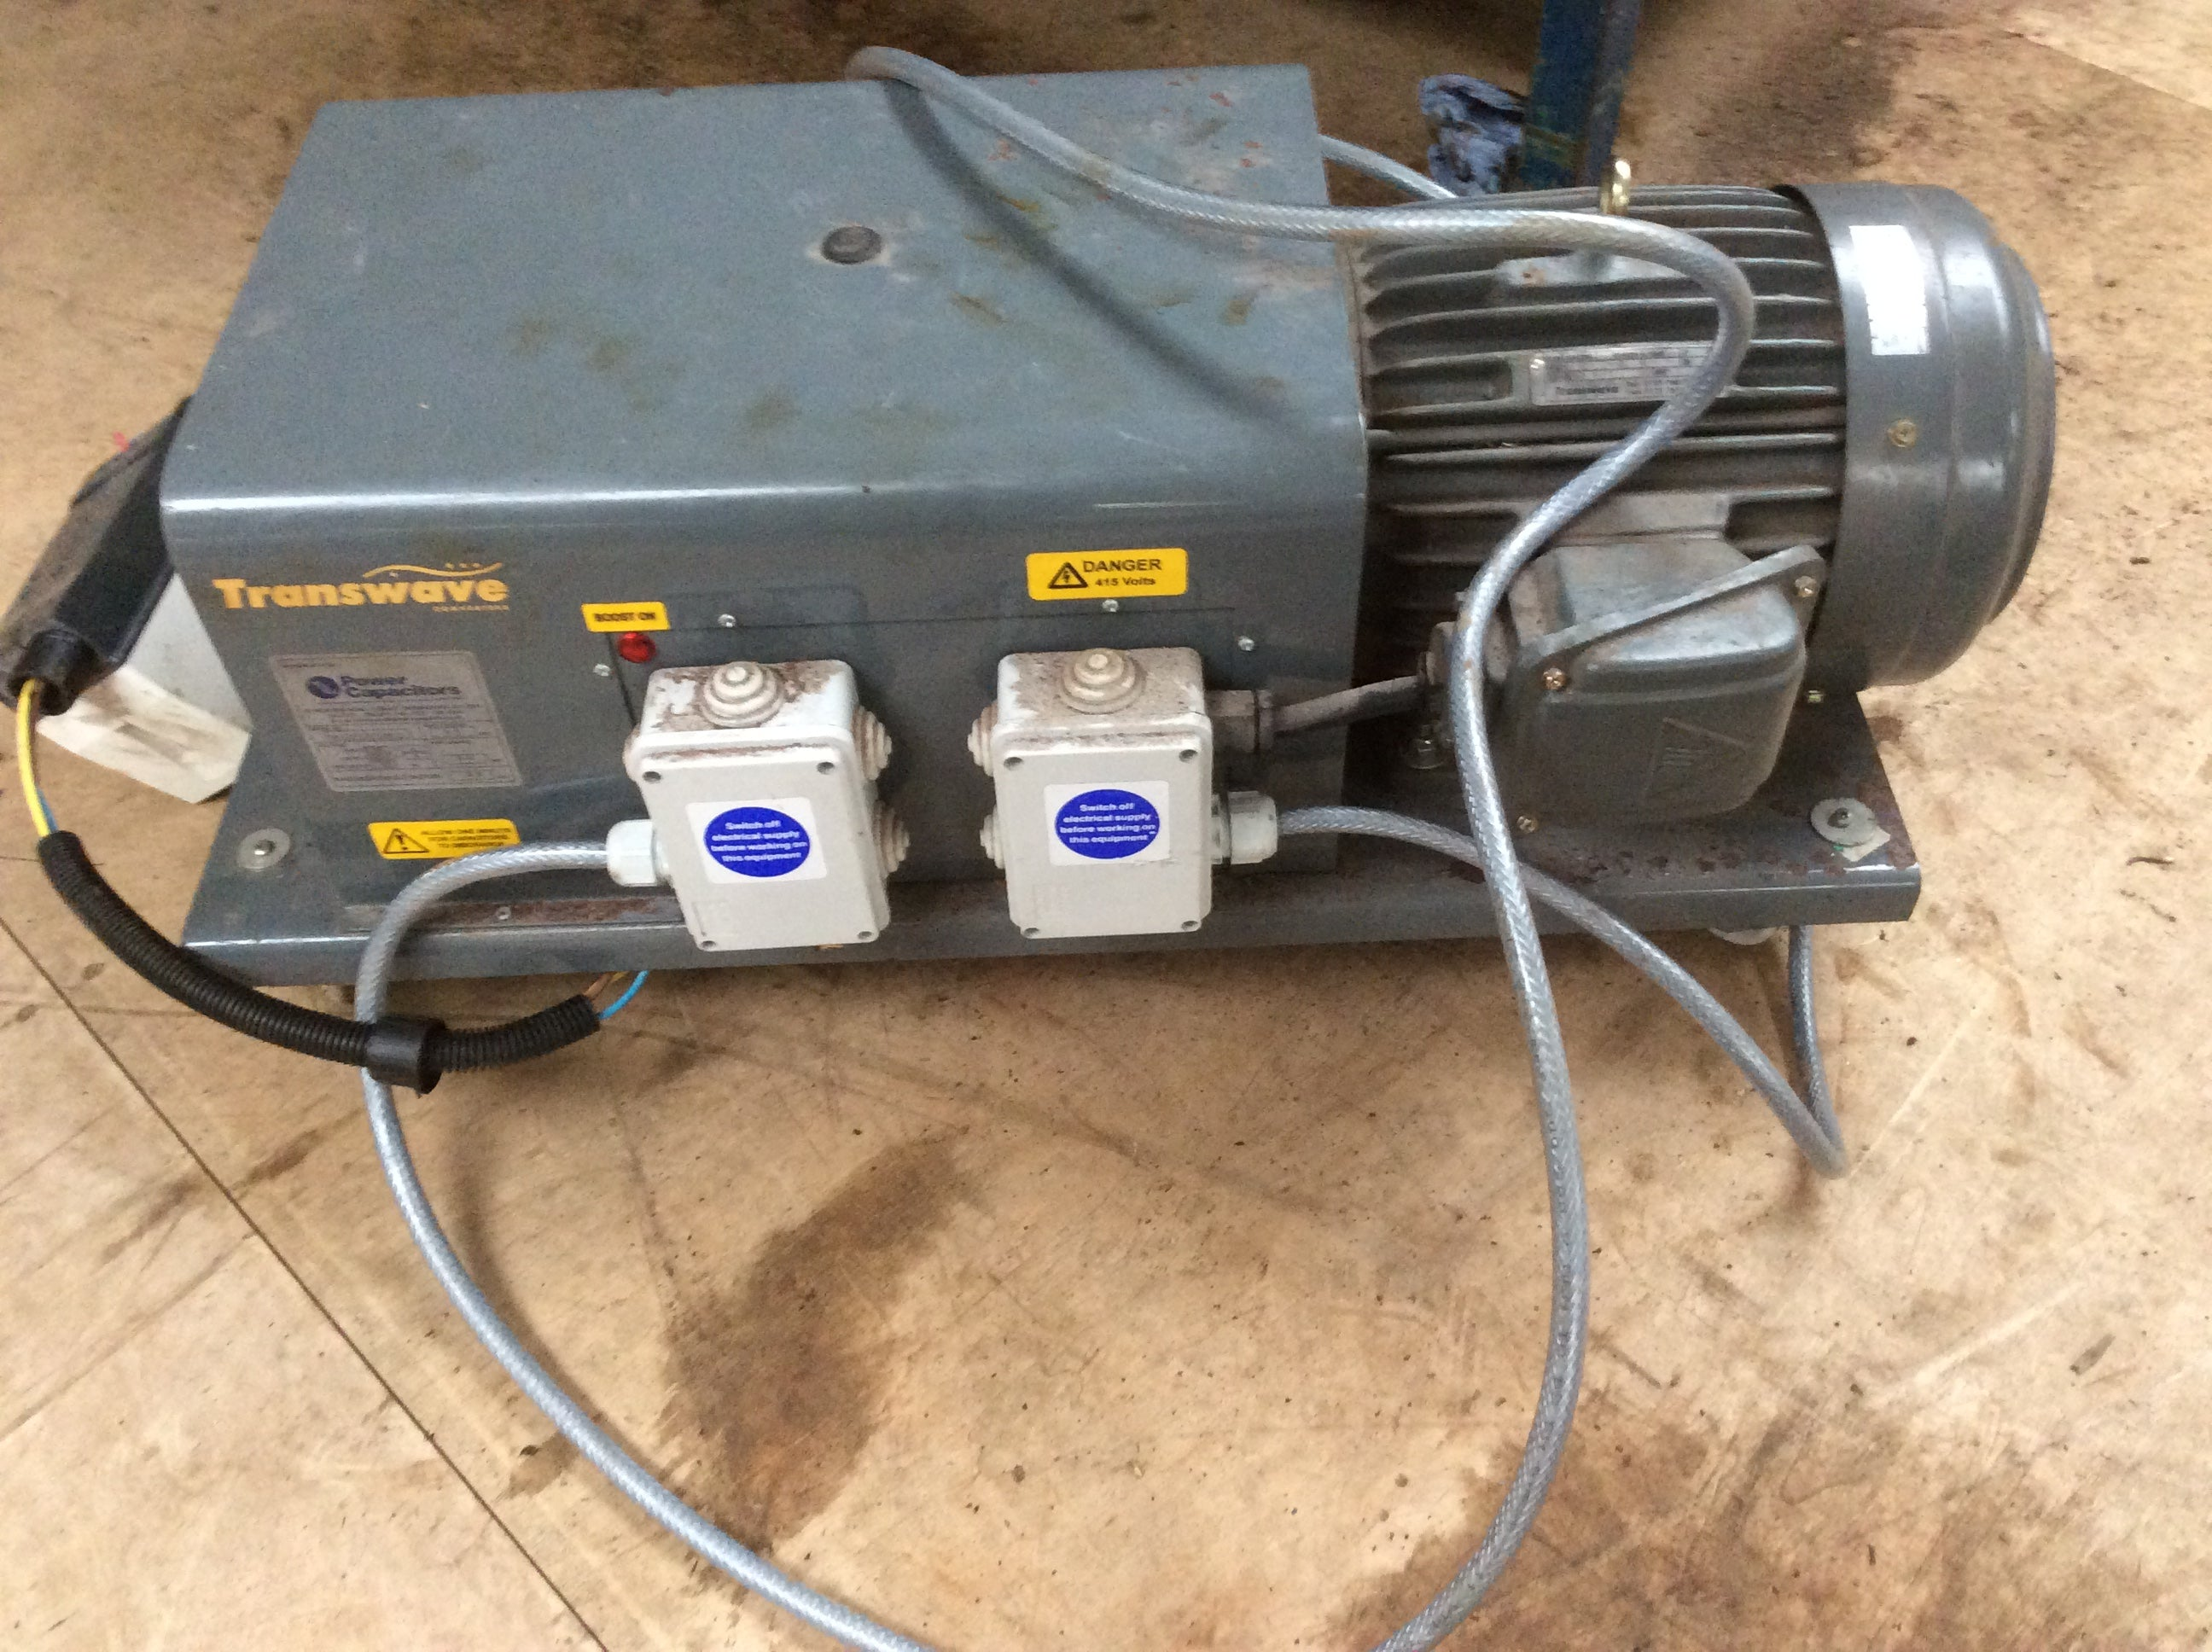 Single / 3 phase rotary transwave convertor 7.5hp